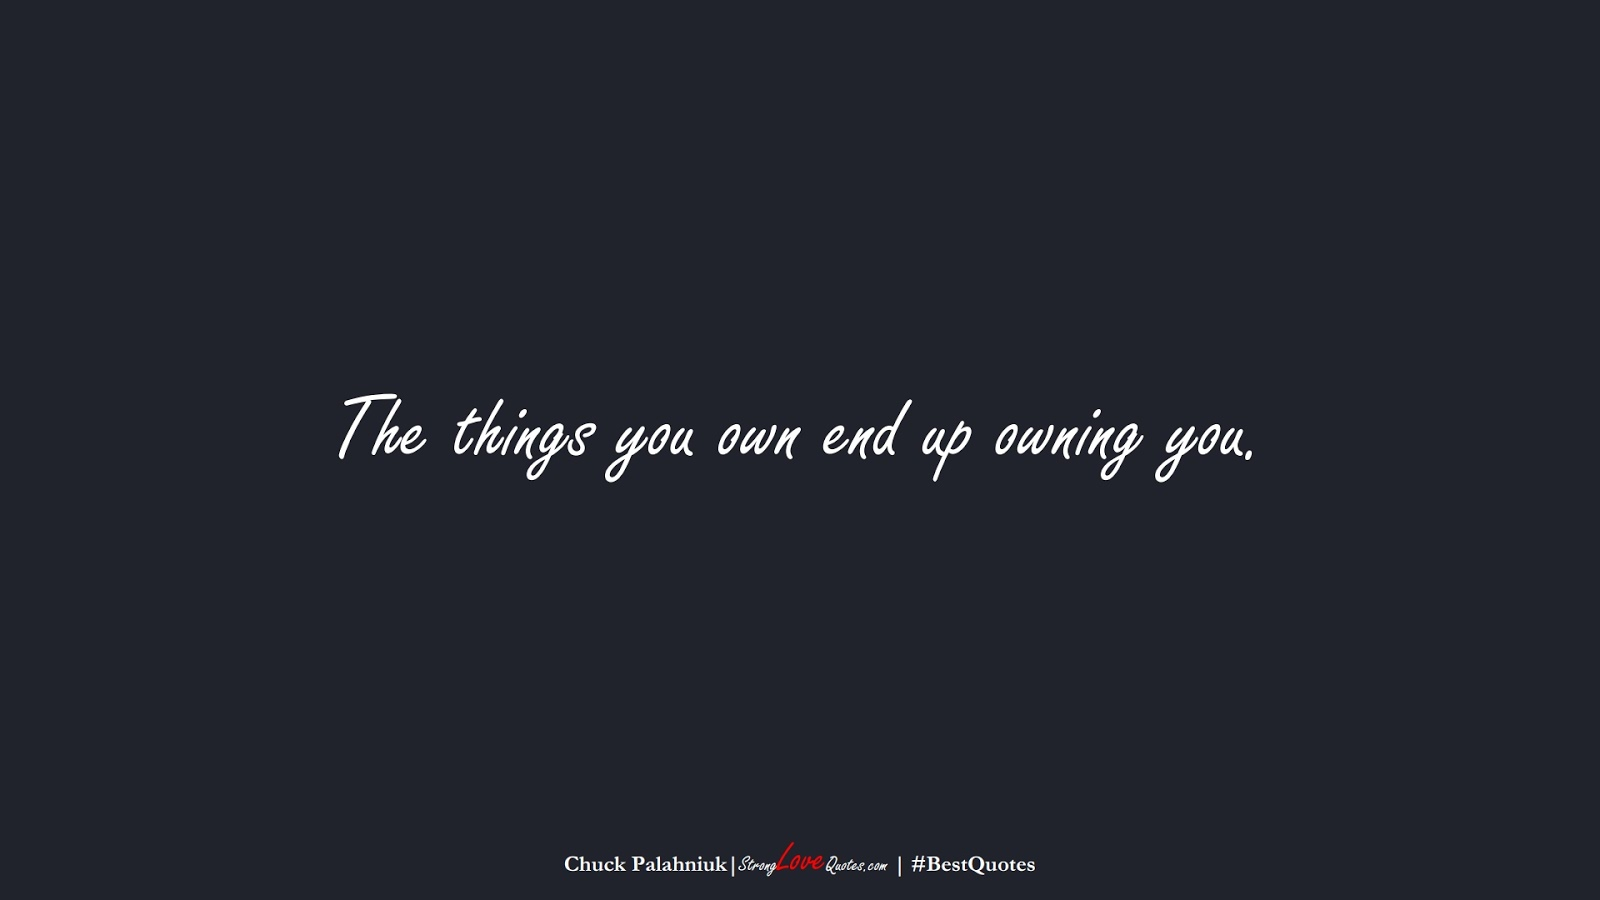 The things you own end up owning you. (Chuck Palahniuk);  #BestQuotes